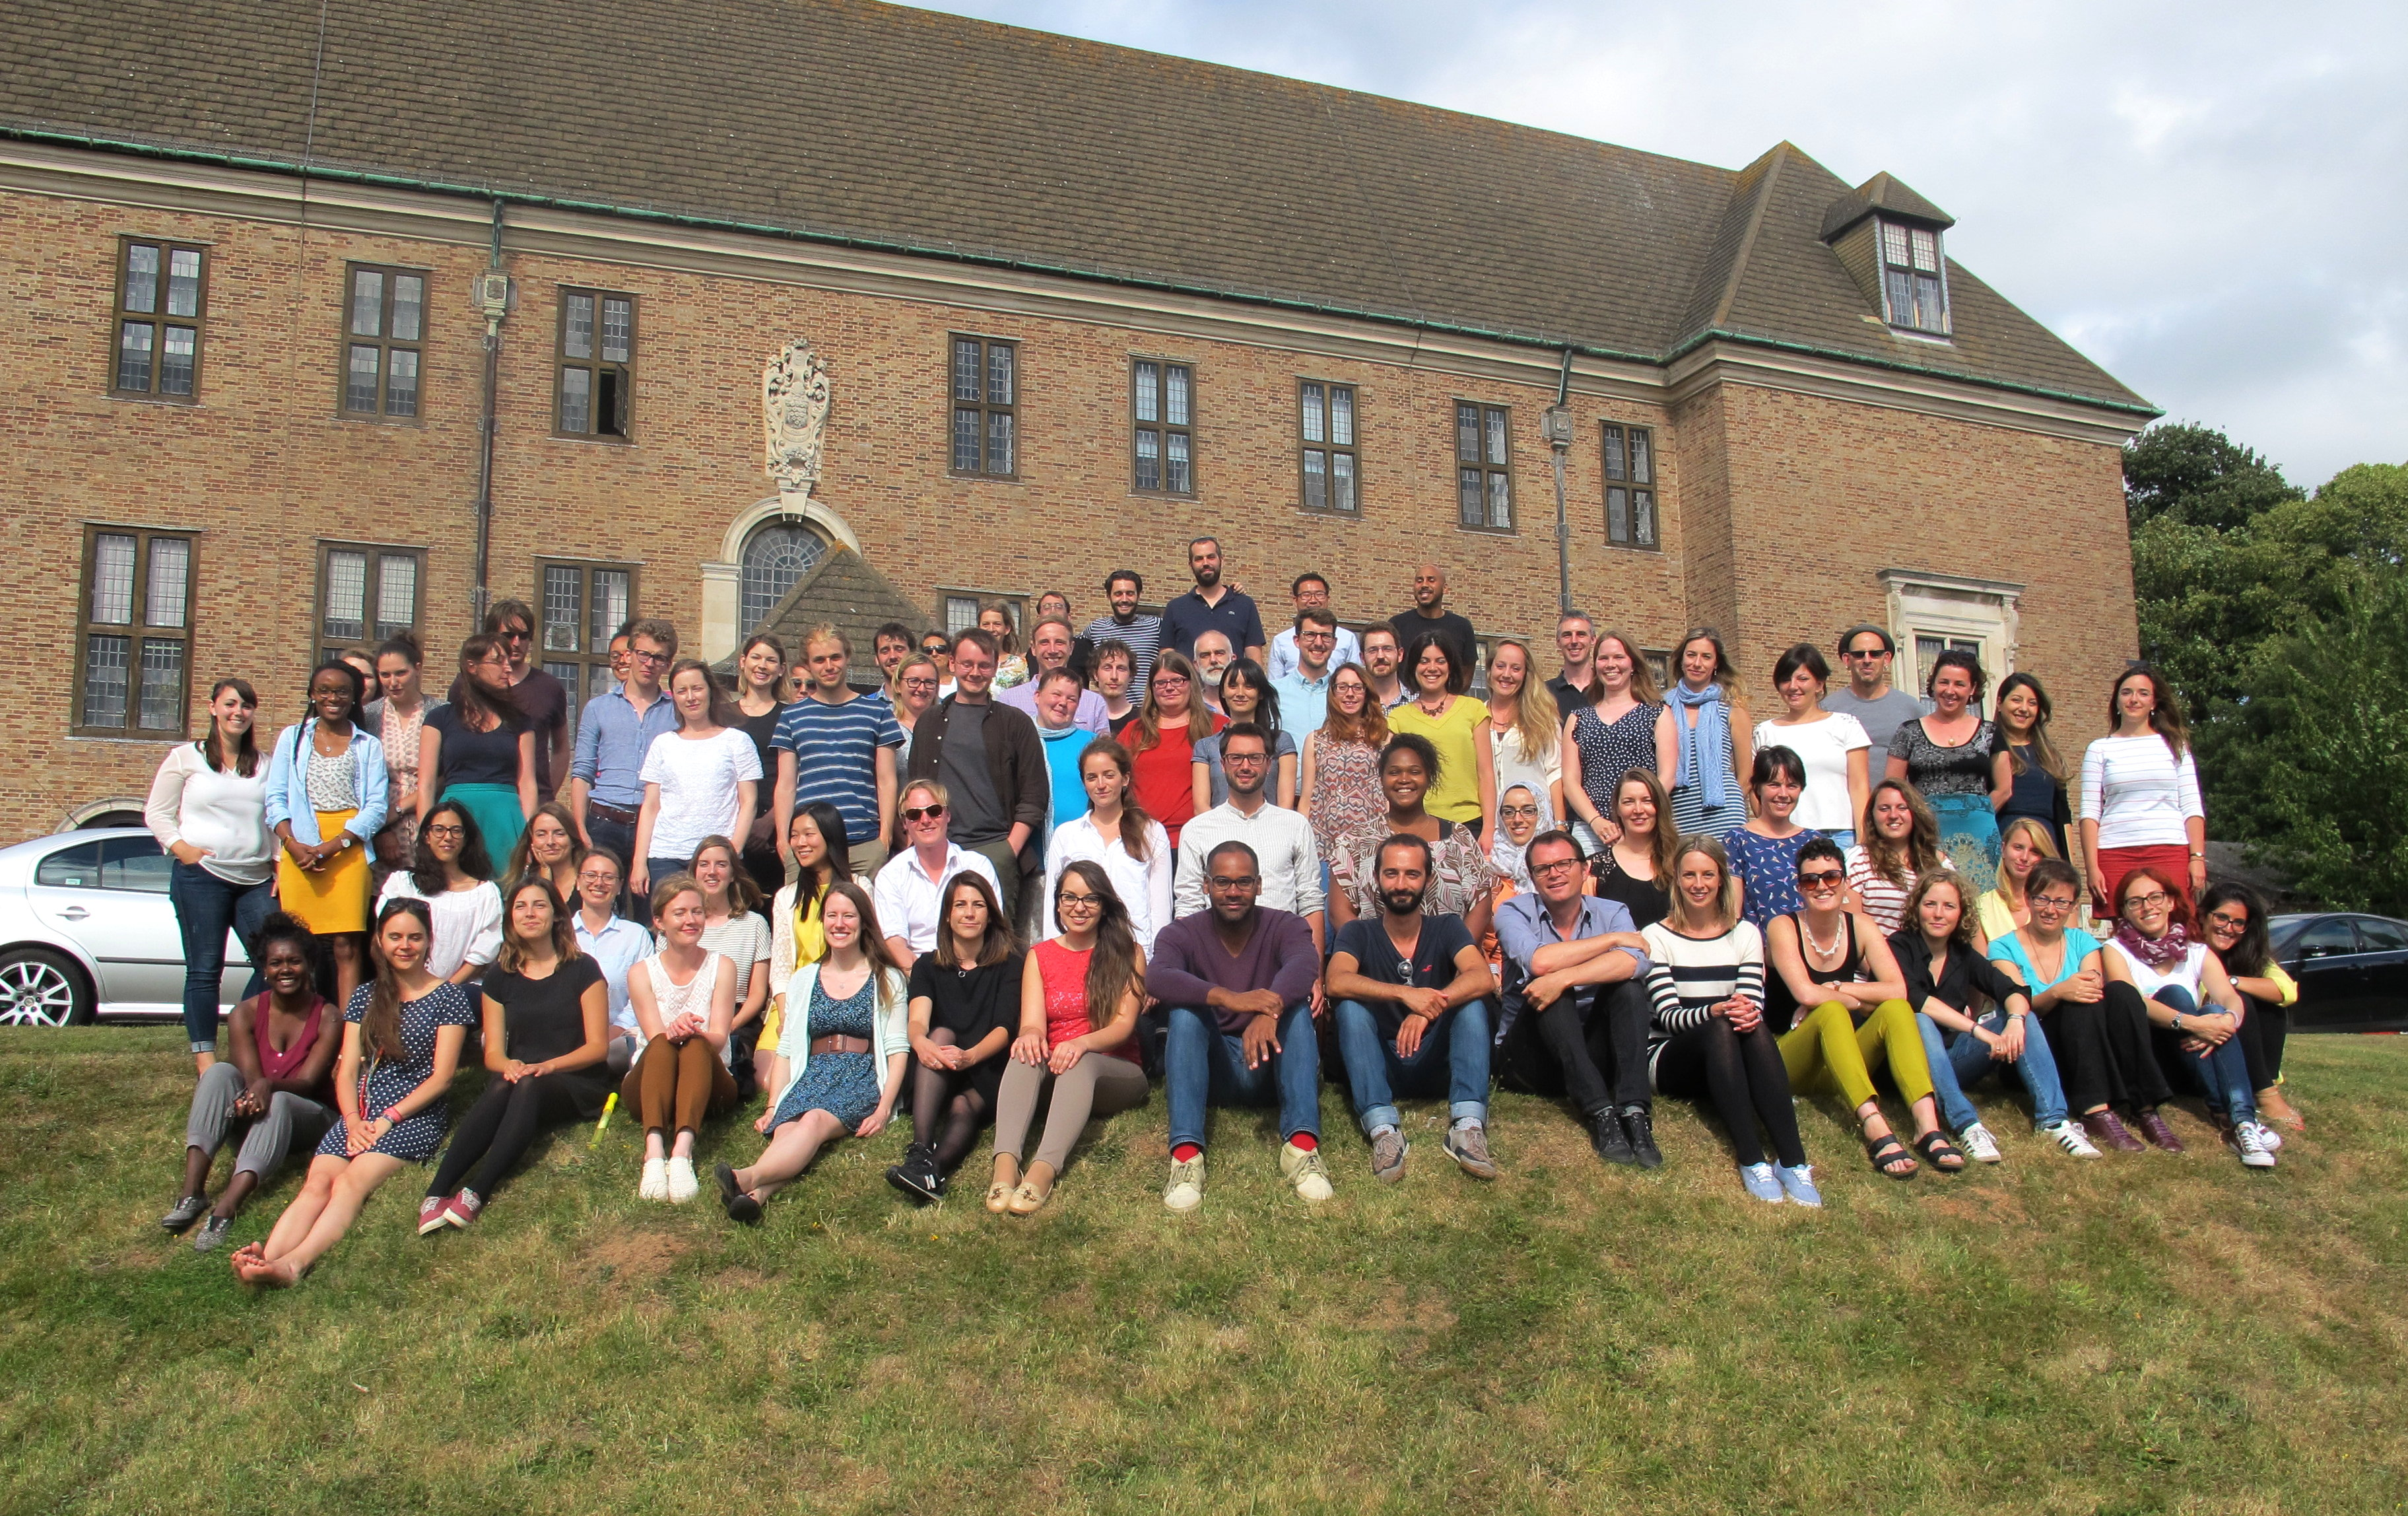 EASP Summer School 2016 (Exeter, UK)